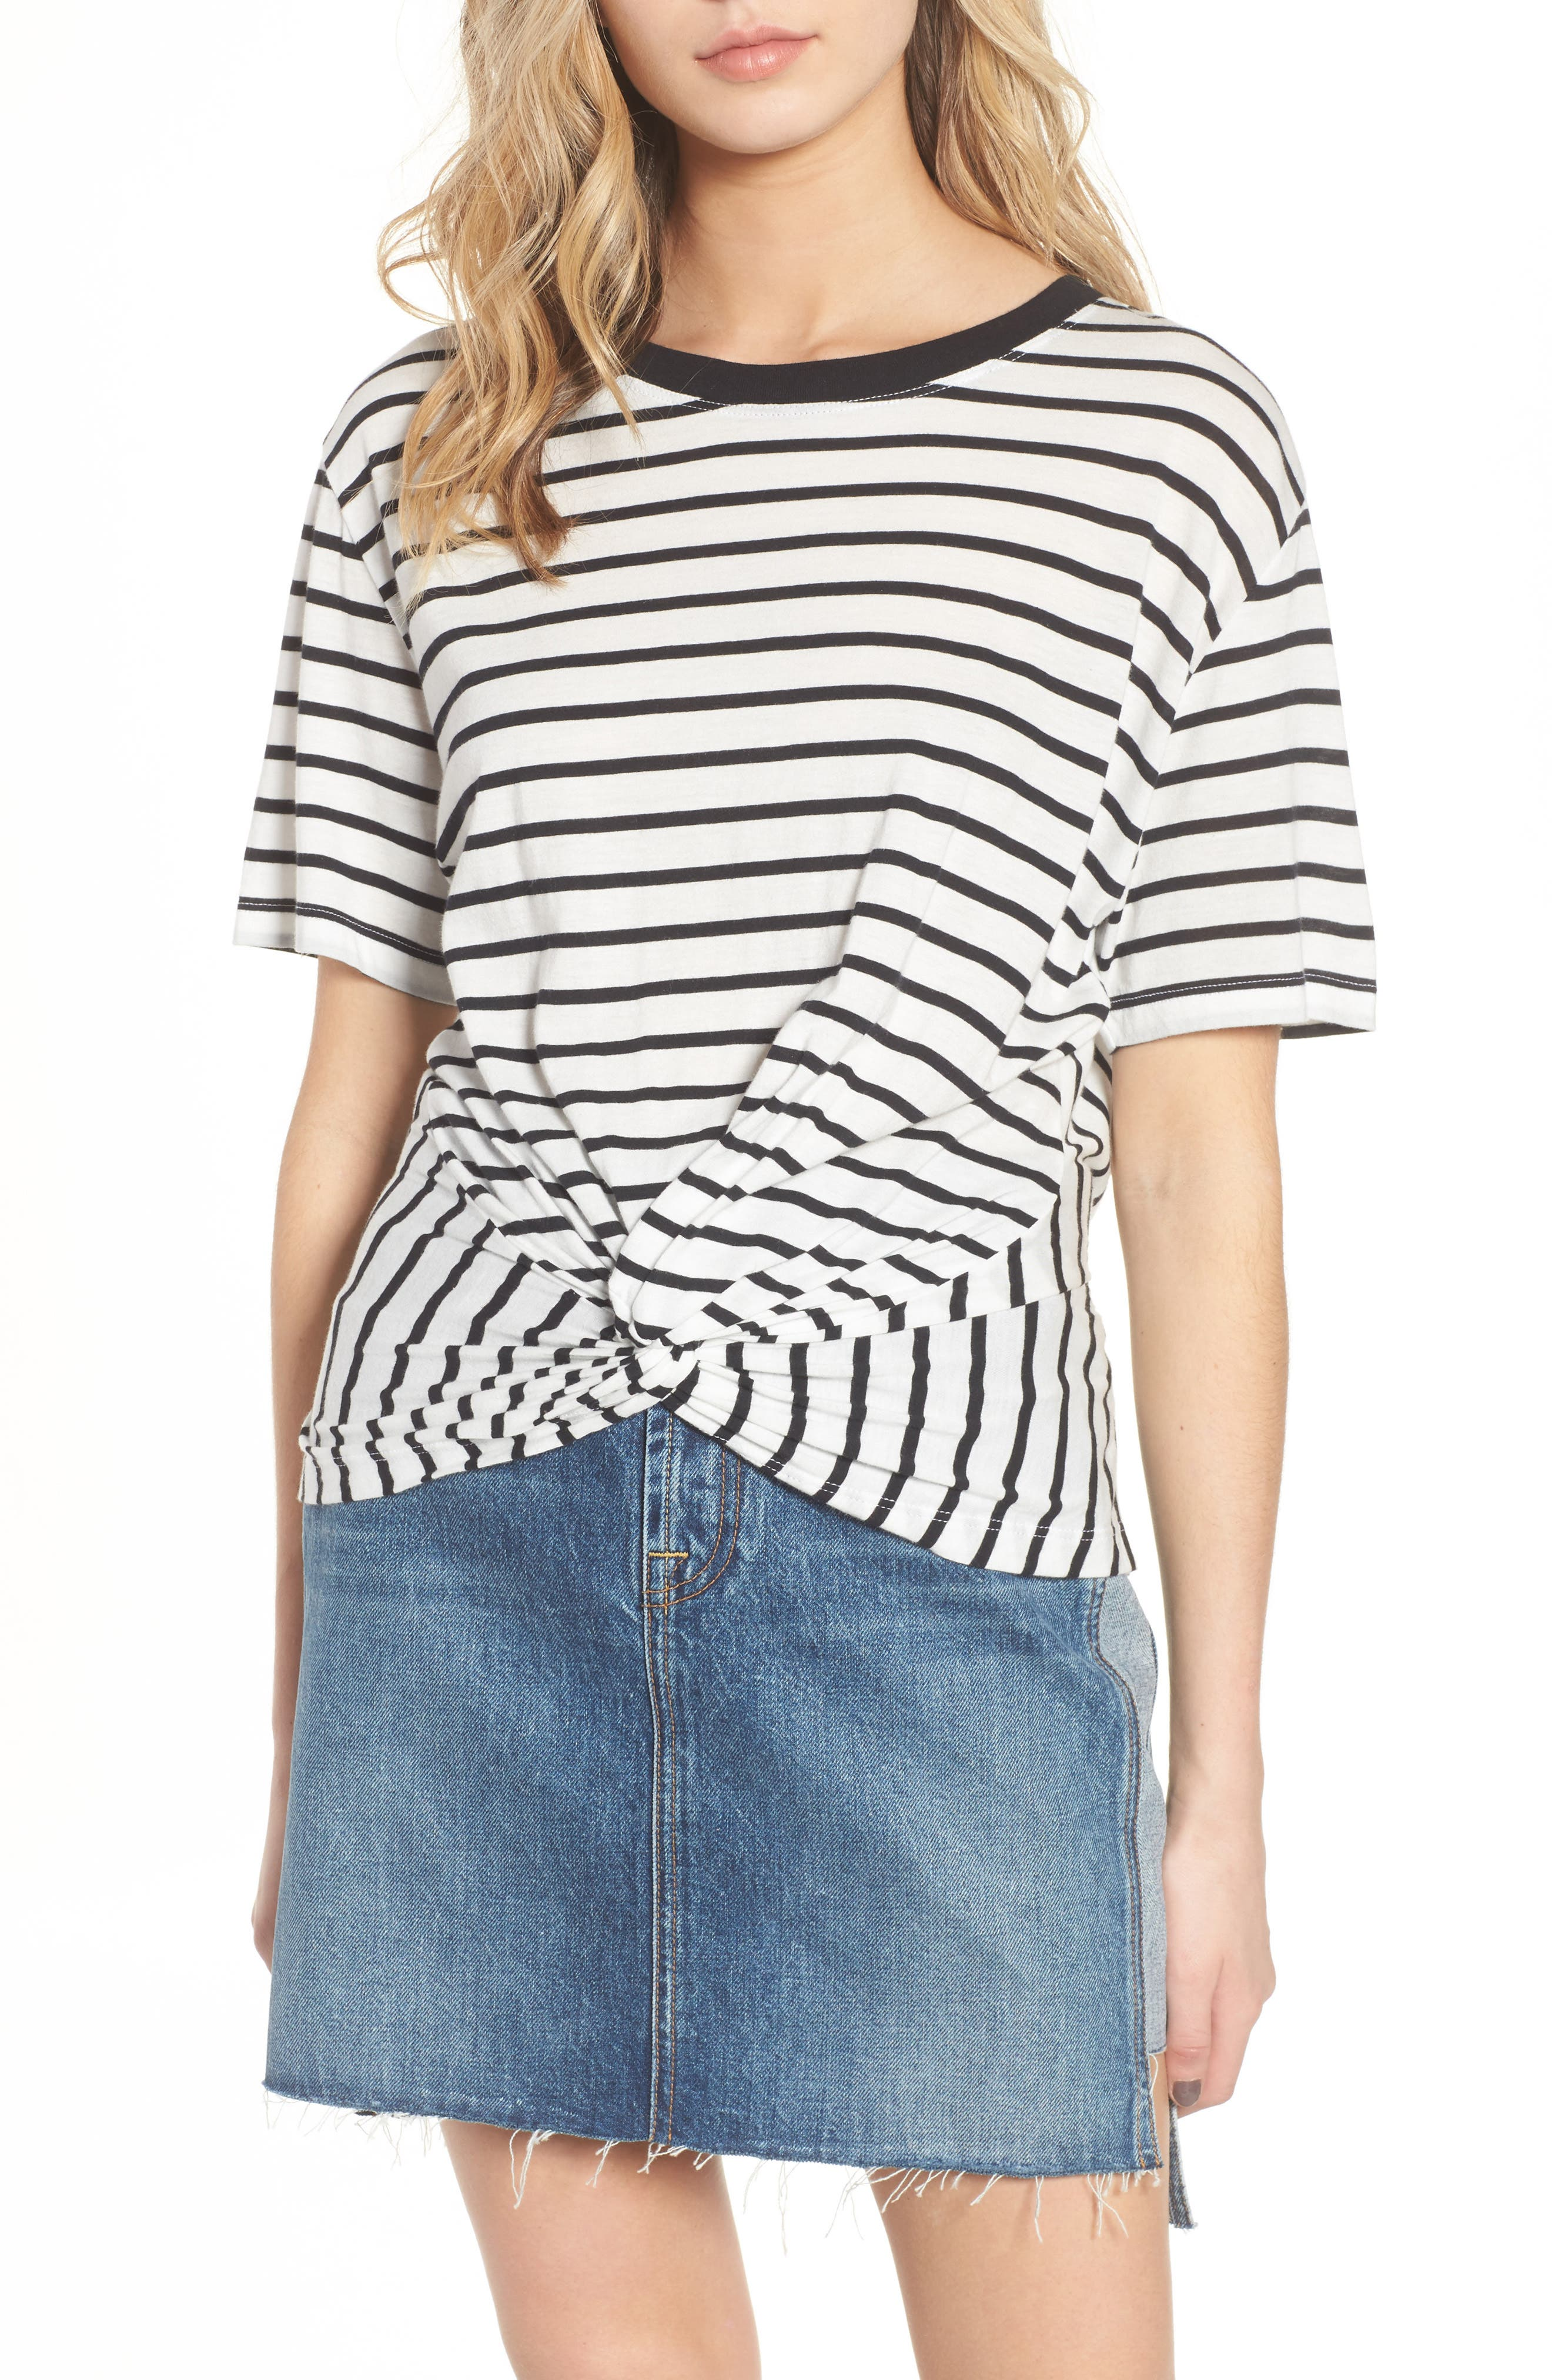 Alternate Image 1 Selected - 7 For All Mankind® Stripe Knotted Tee